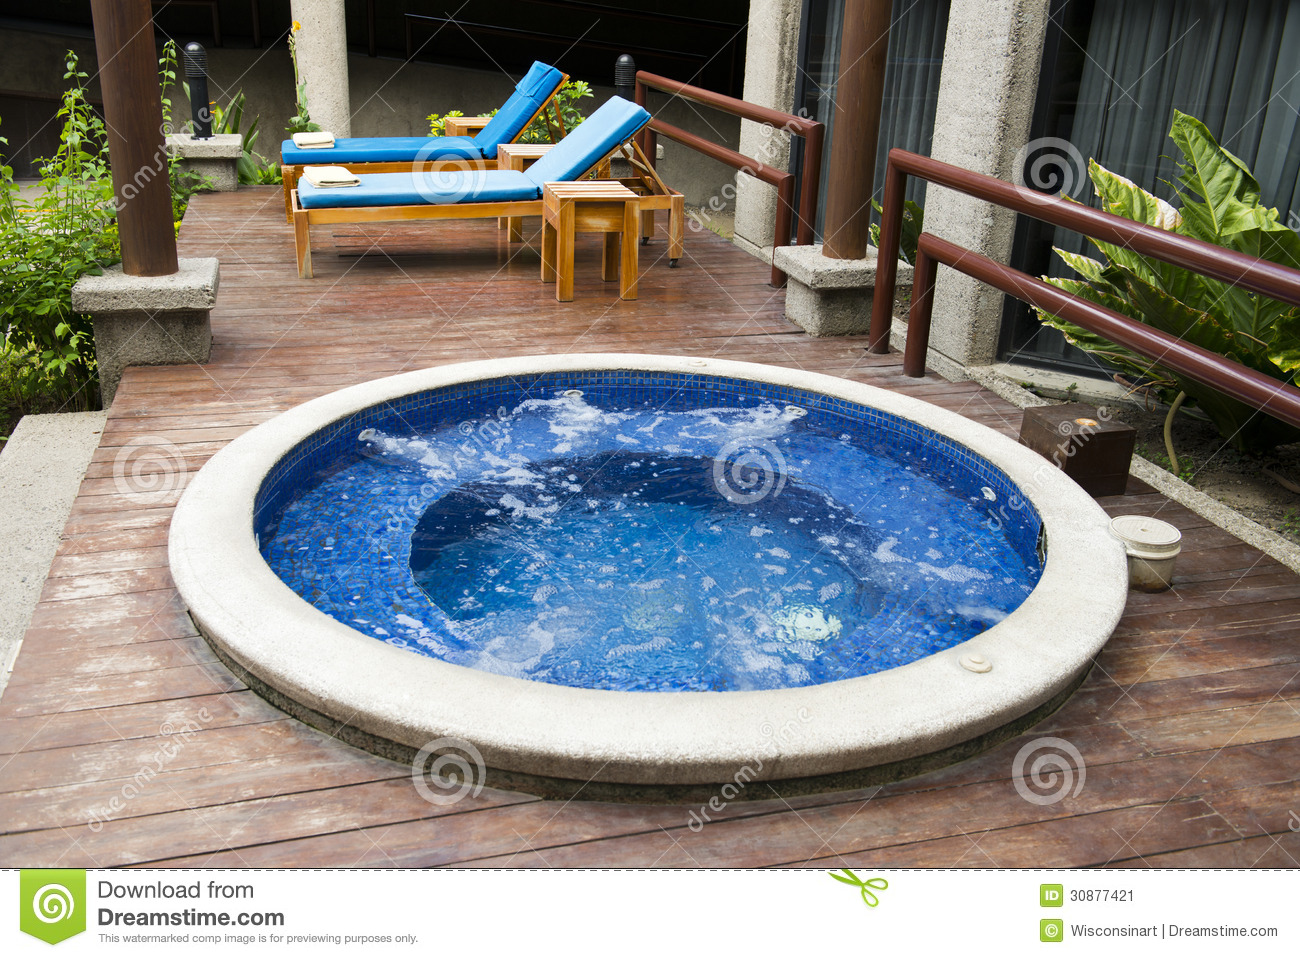 Jacuzzi Pool Gspa Luxury Hotel Resort And Hot Tub Water Spa Stock Image